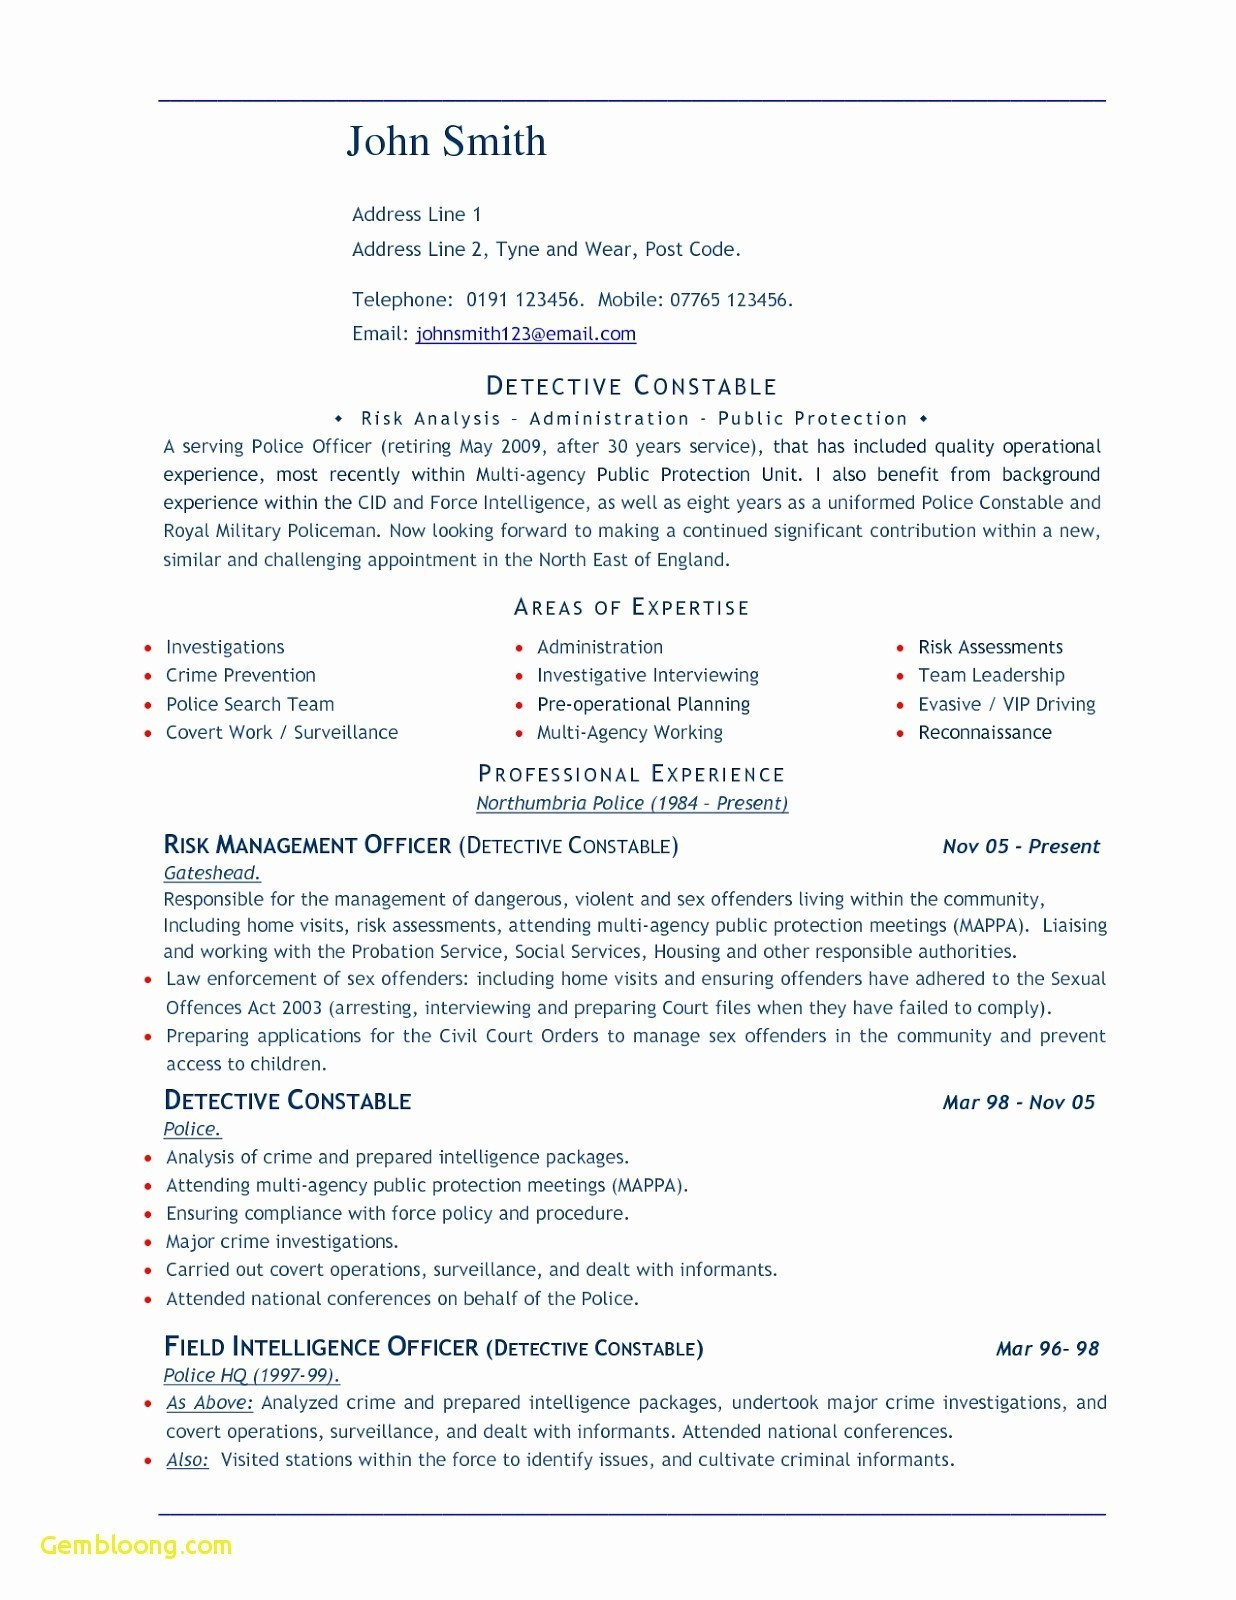 wordperfect resume template example-Free Templates for Resumes Microsoft Word Perfect Resume Microsoft Word Luxury Best Federal Government Resume 11-k